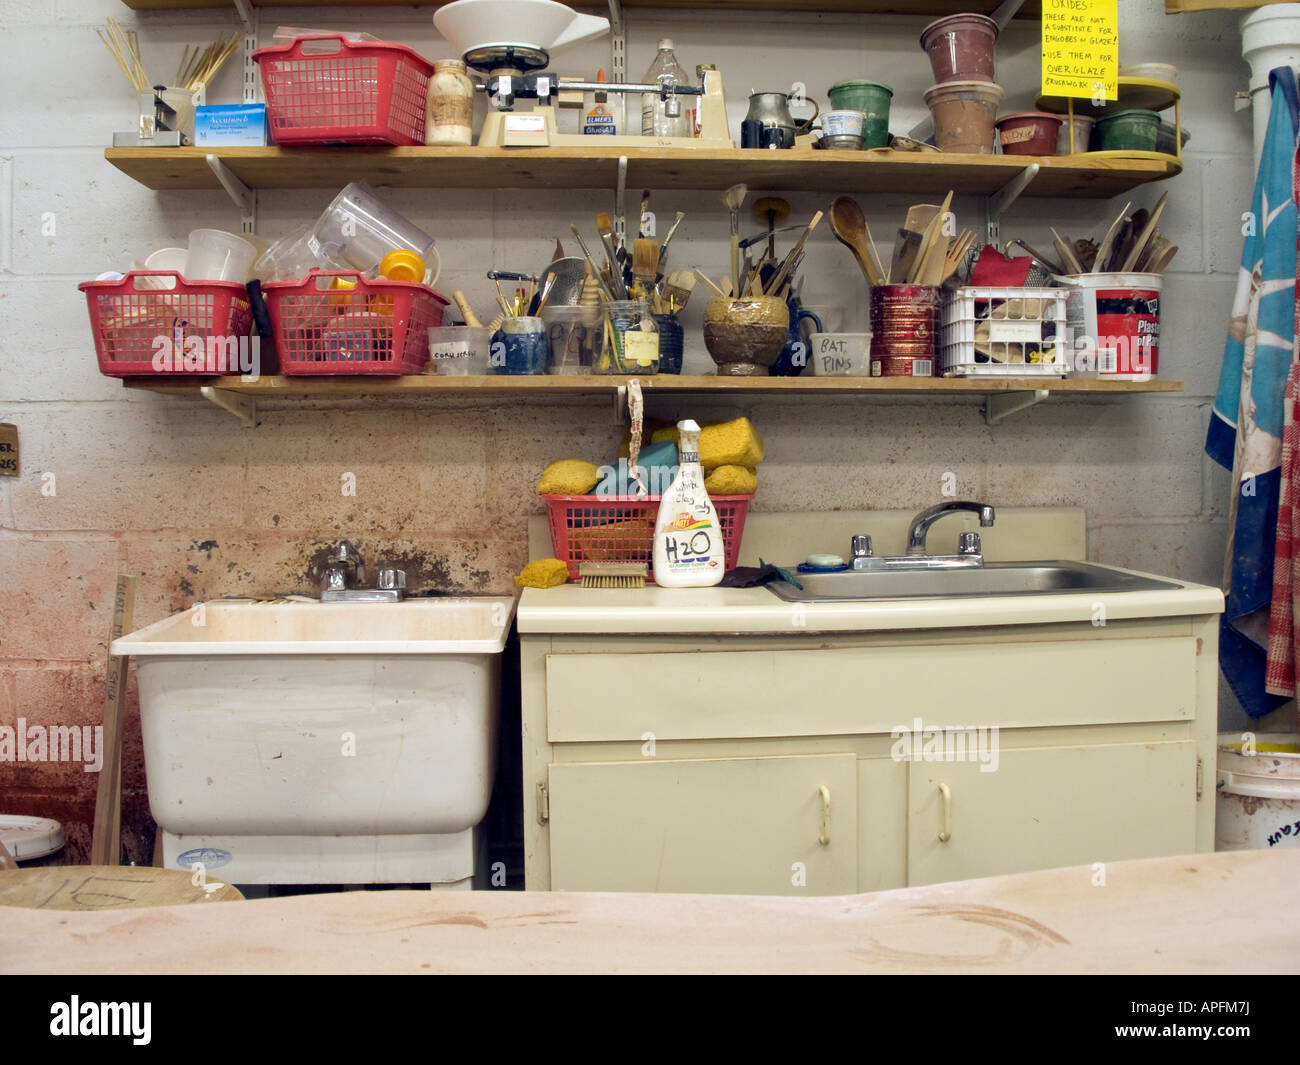 Sink and tool storage in a pottery studio - Stock Image